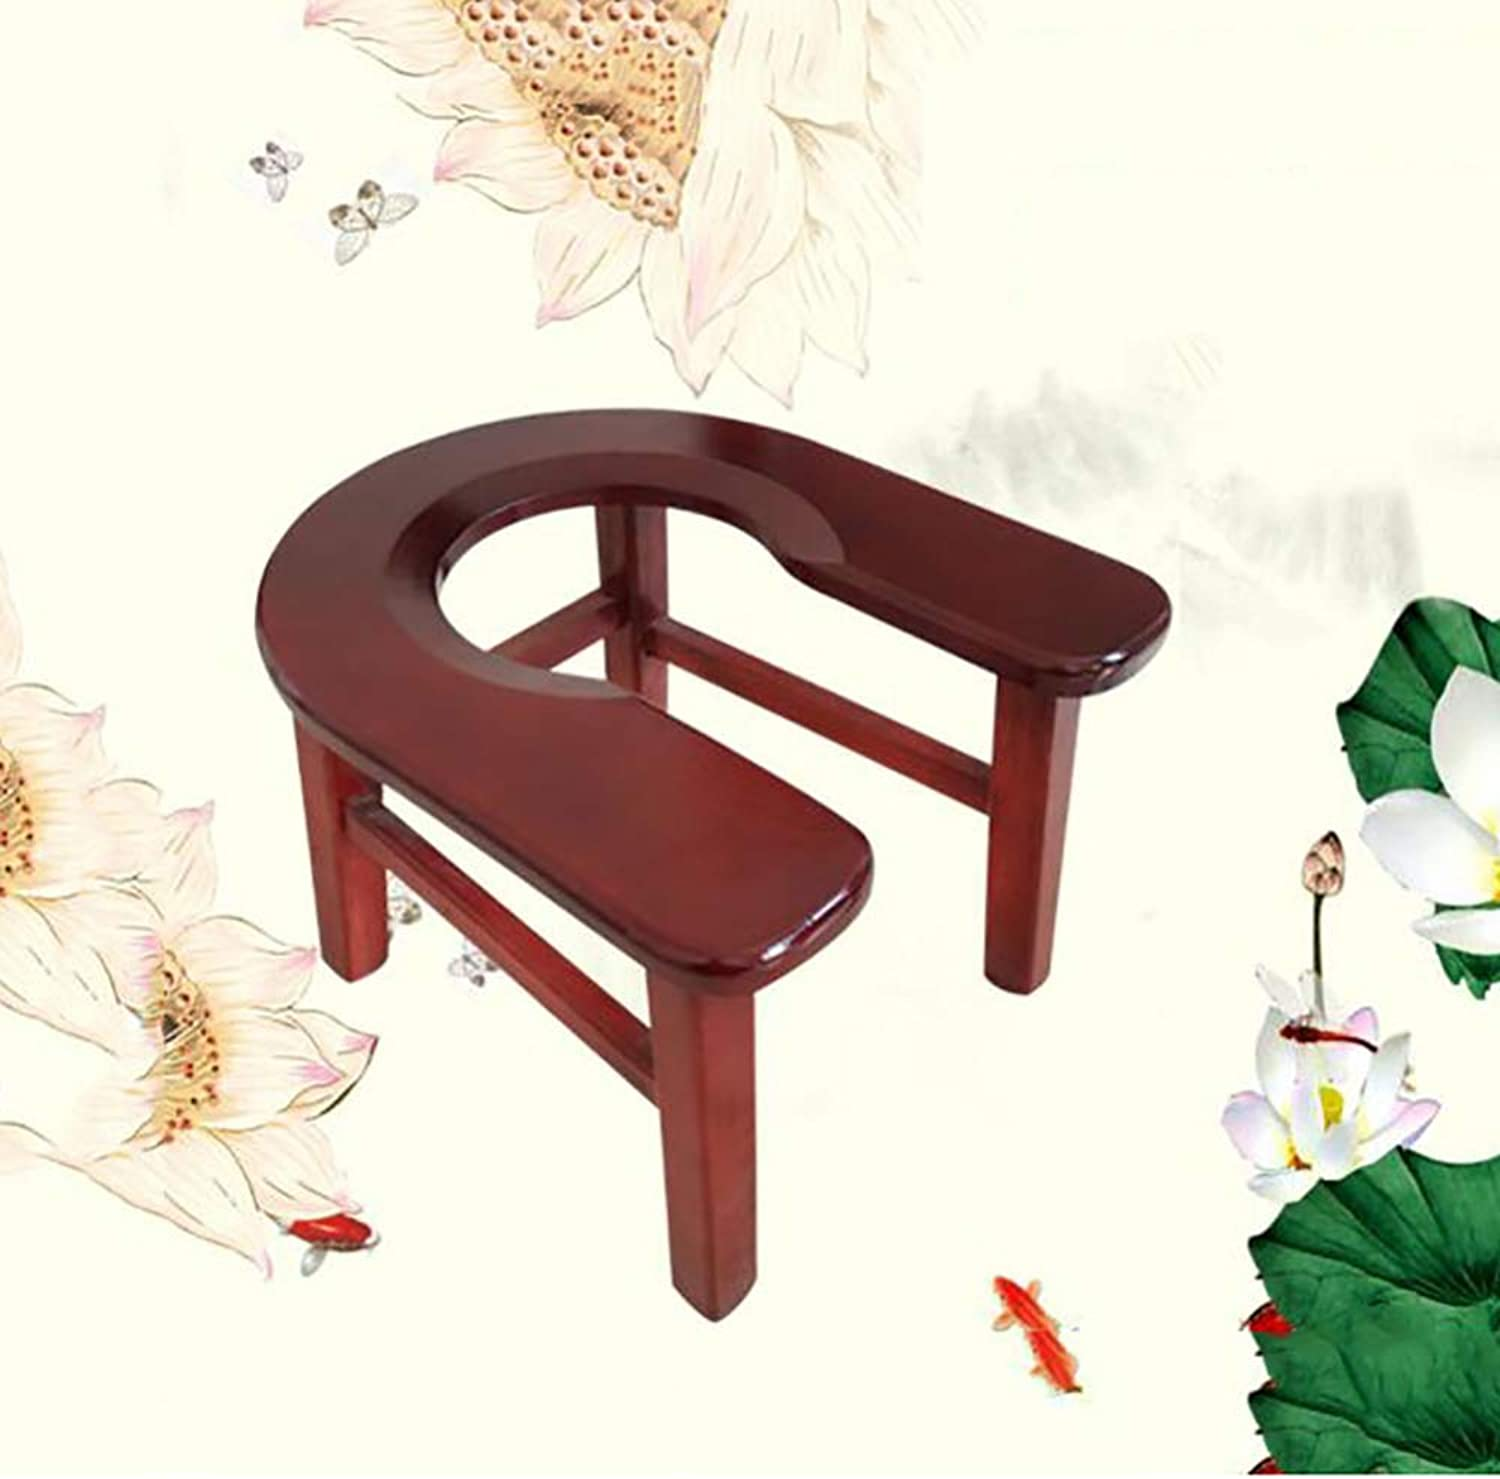 Commode Chair Toilet Chair Toilet Surround Natural Wood Stool Wooden Toilet Simple Mobile Toilet Seat,A+Height20cm